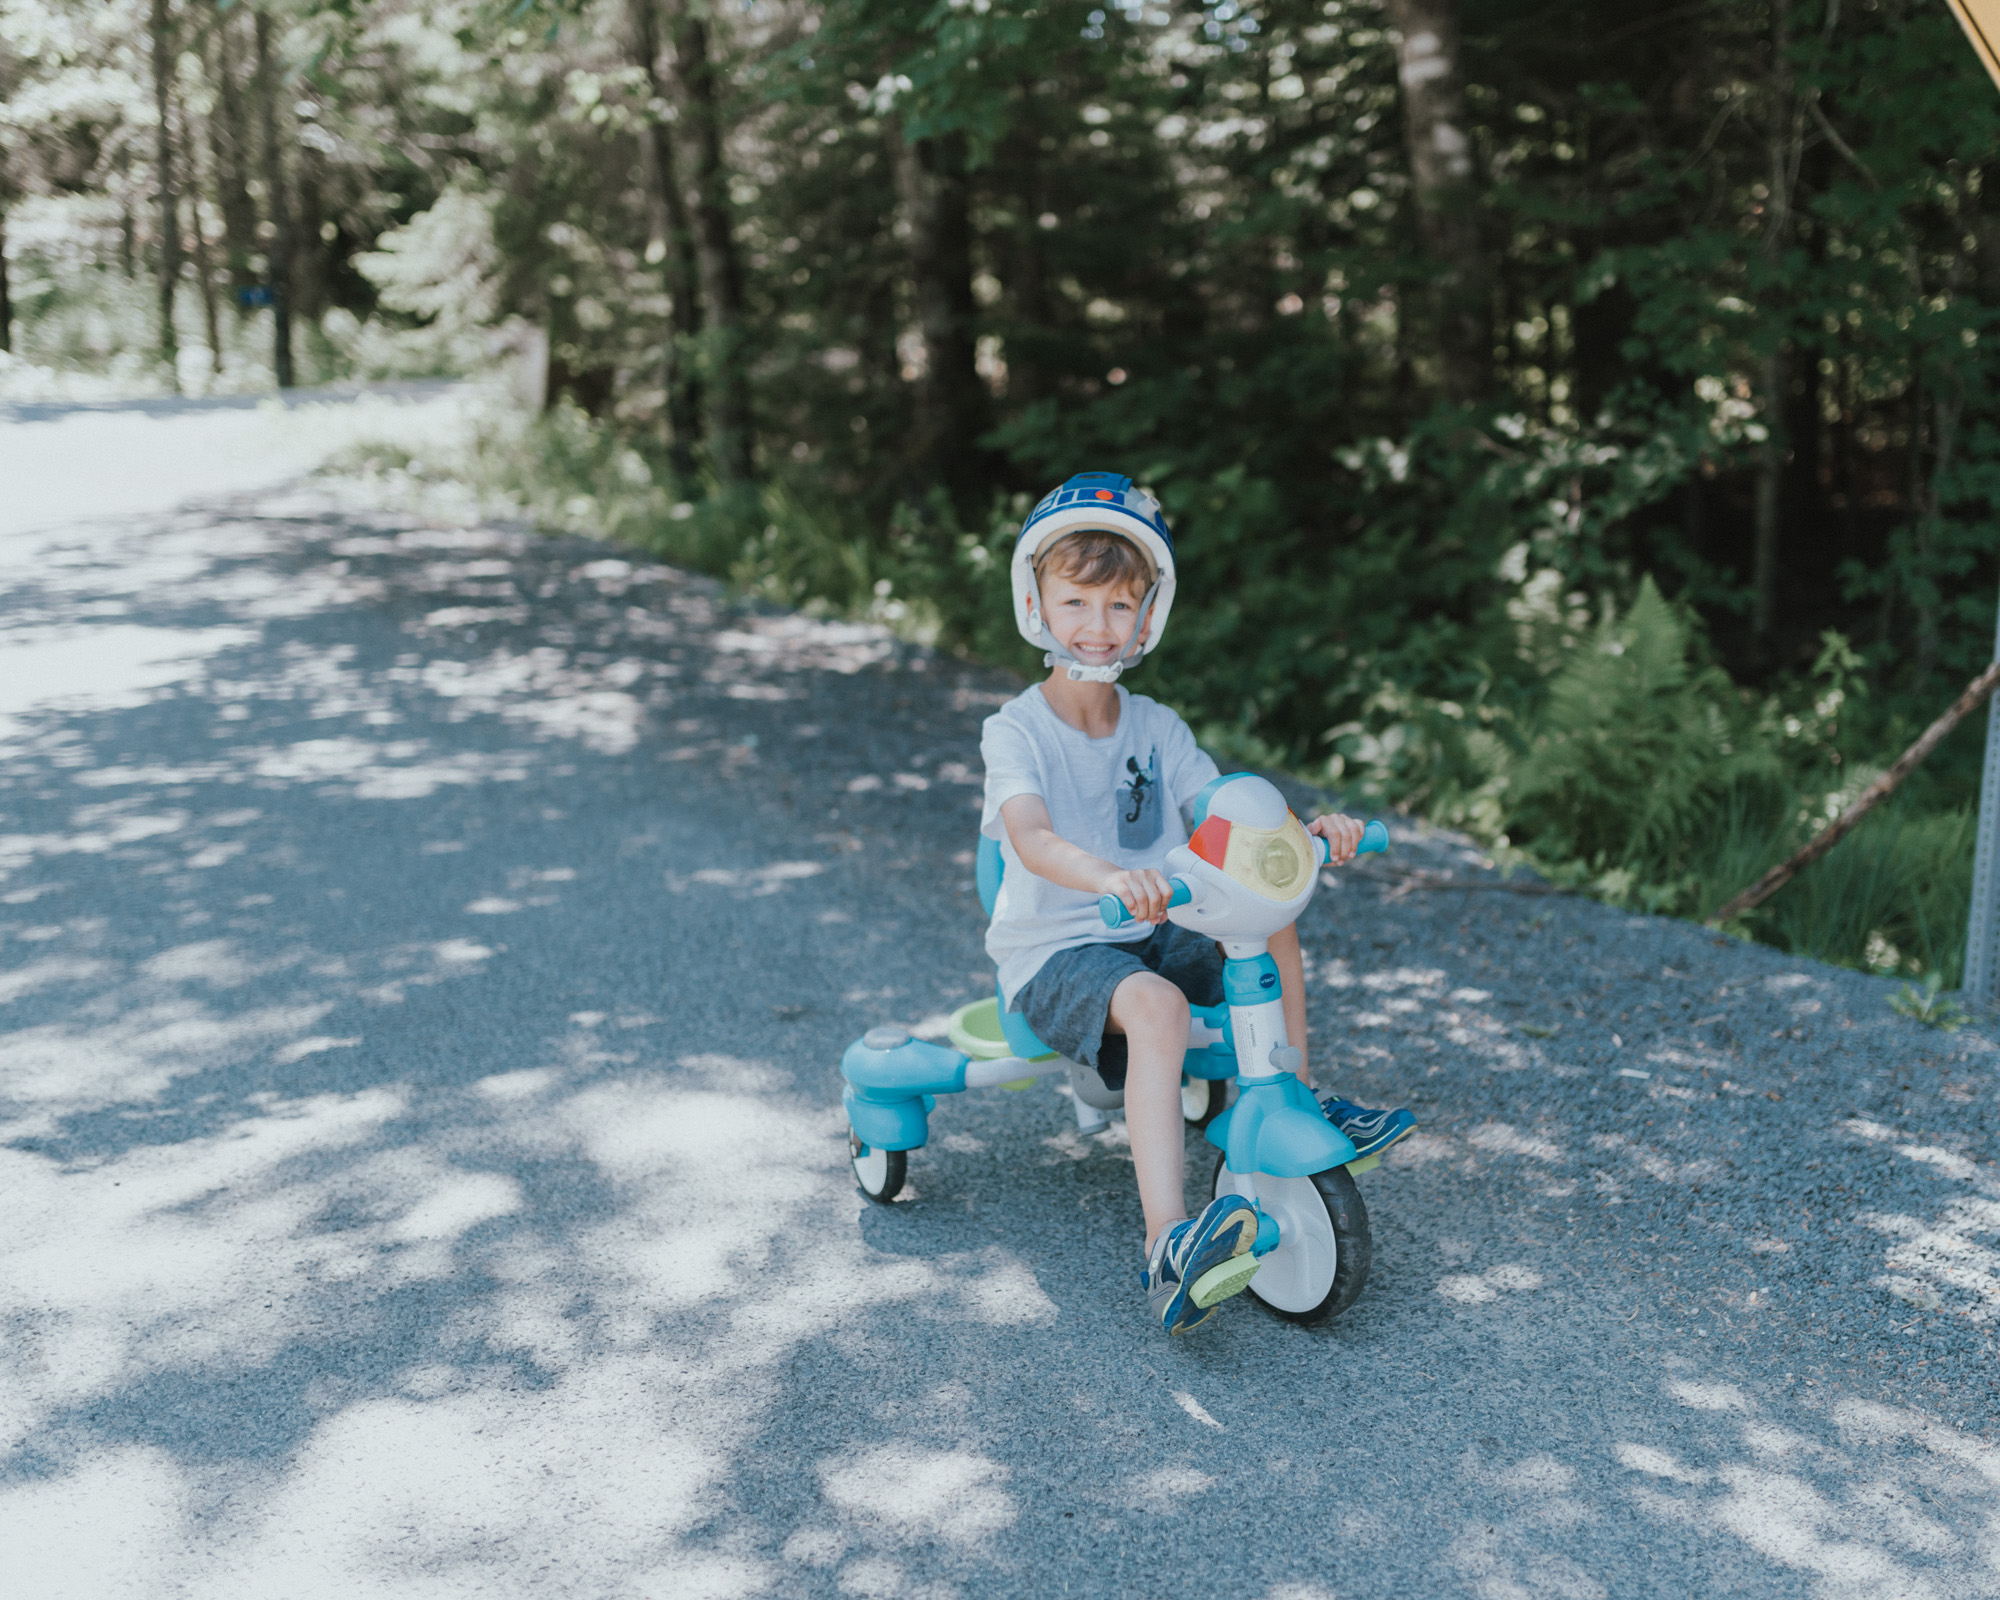 The Wild Decoelis | Summer Ready With Vtech Toys | Vtech Tek Trike stage 4 setup